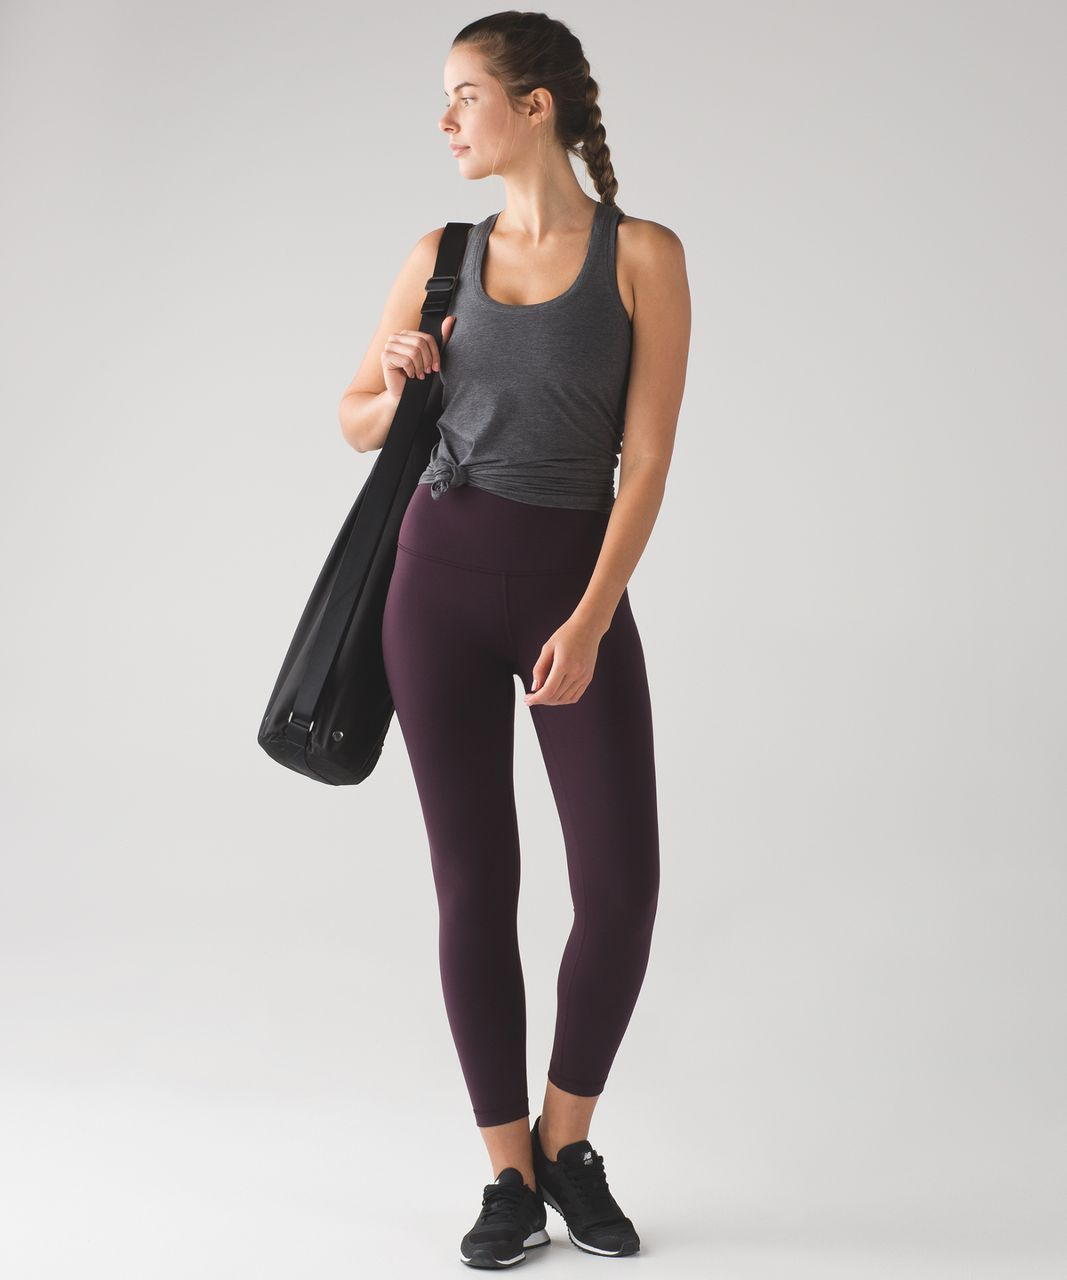 Lululemon High Times Pant - Black Cherry